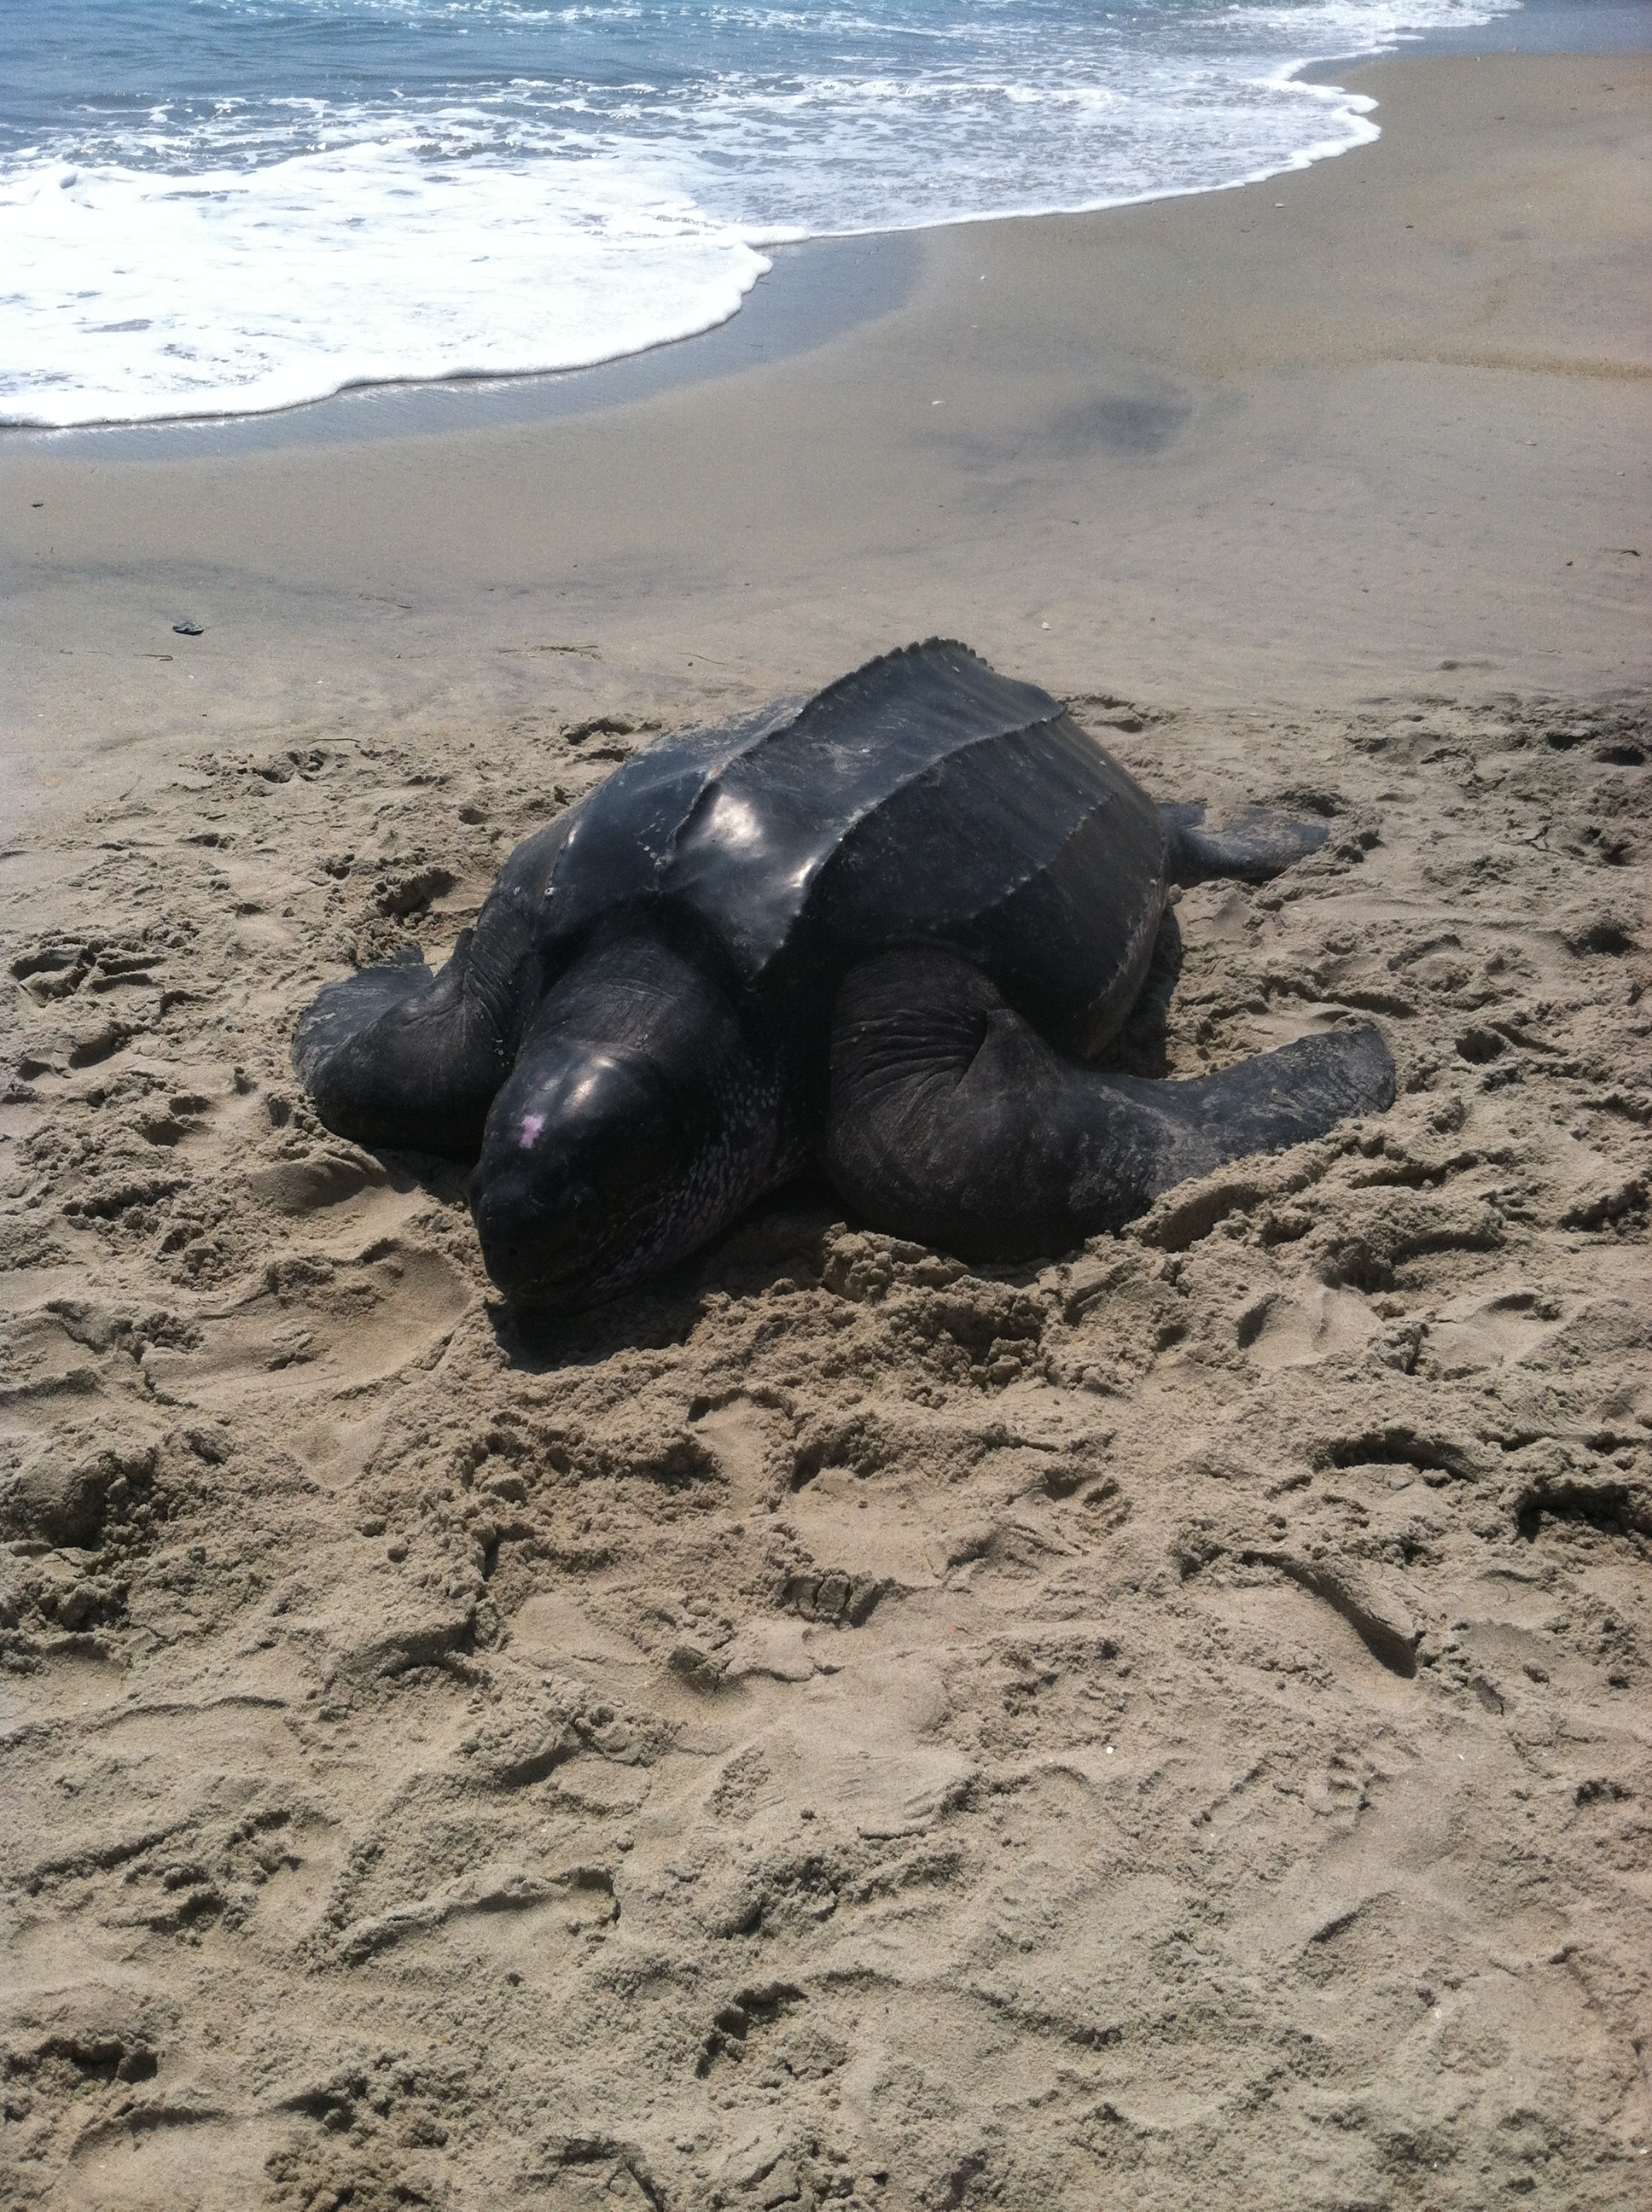 Leatherback sea turtle images